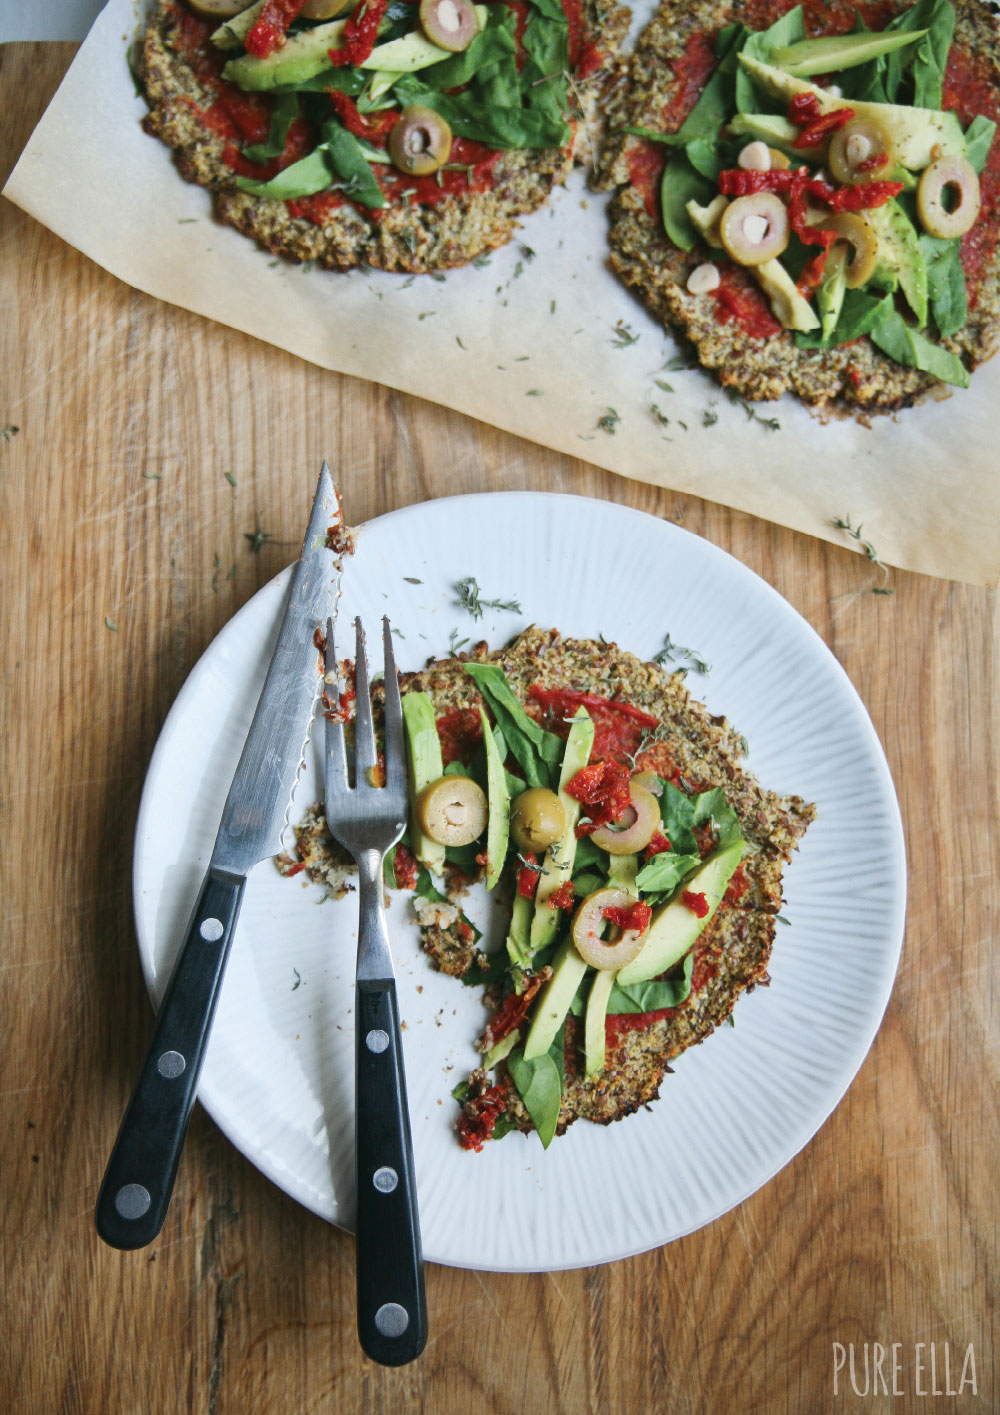 Pure-Ella-gluten-free-paleo-vegan-cauliflower-crust-pizza5